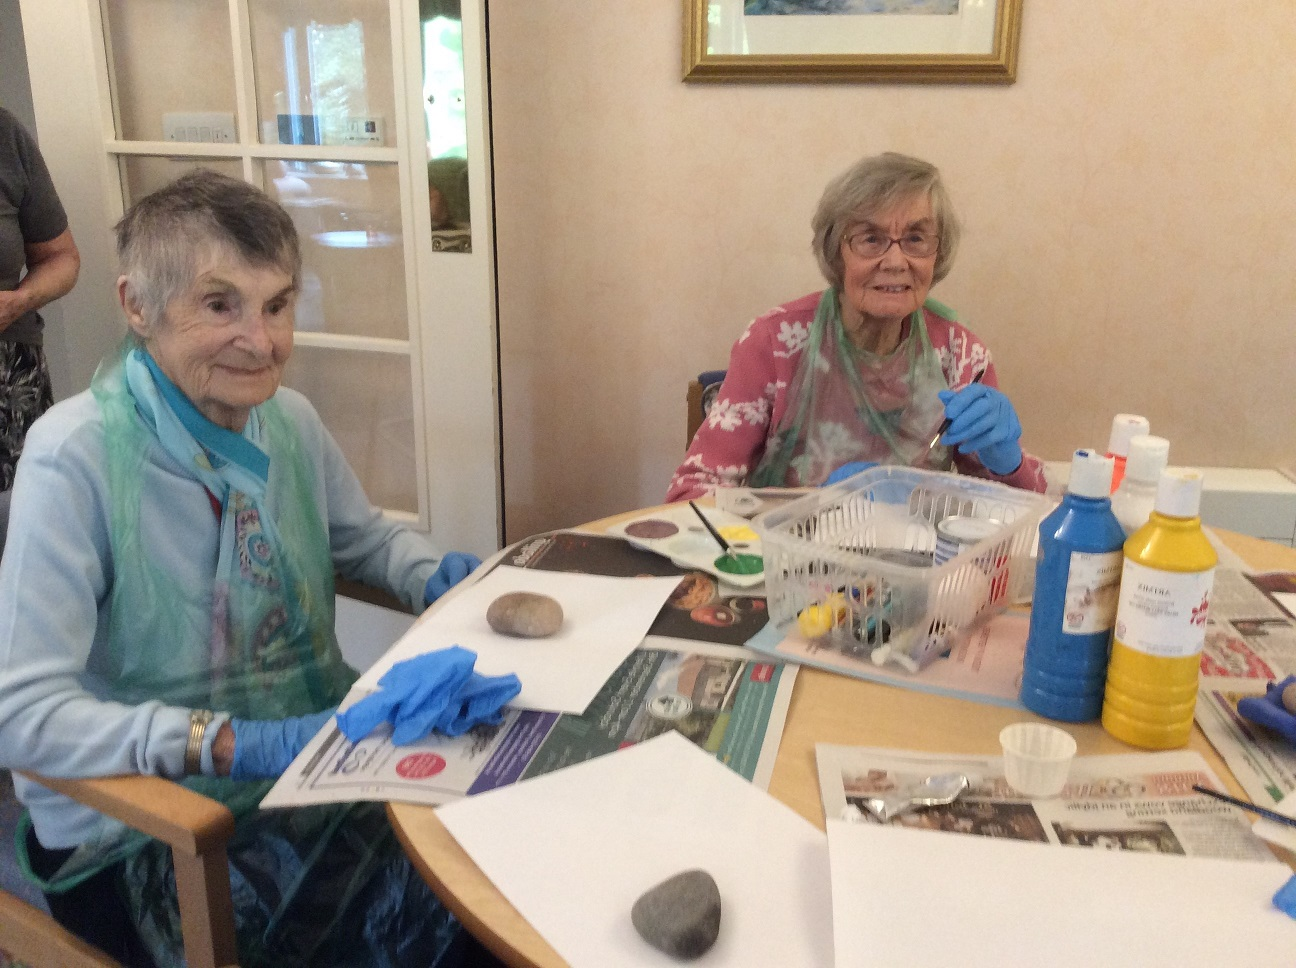 Residents Marjorie Smith and Hazel Edwards enjoying our Halloween craft activity